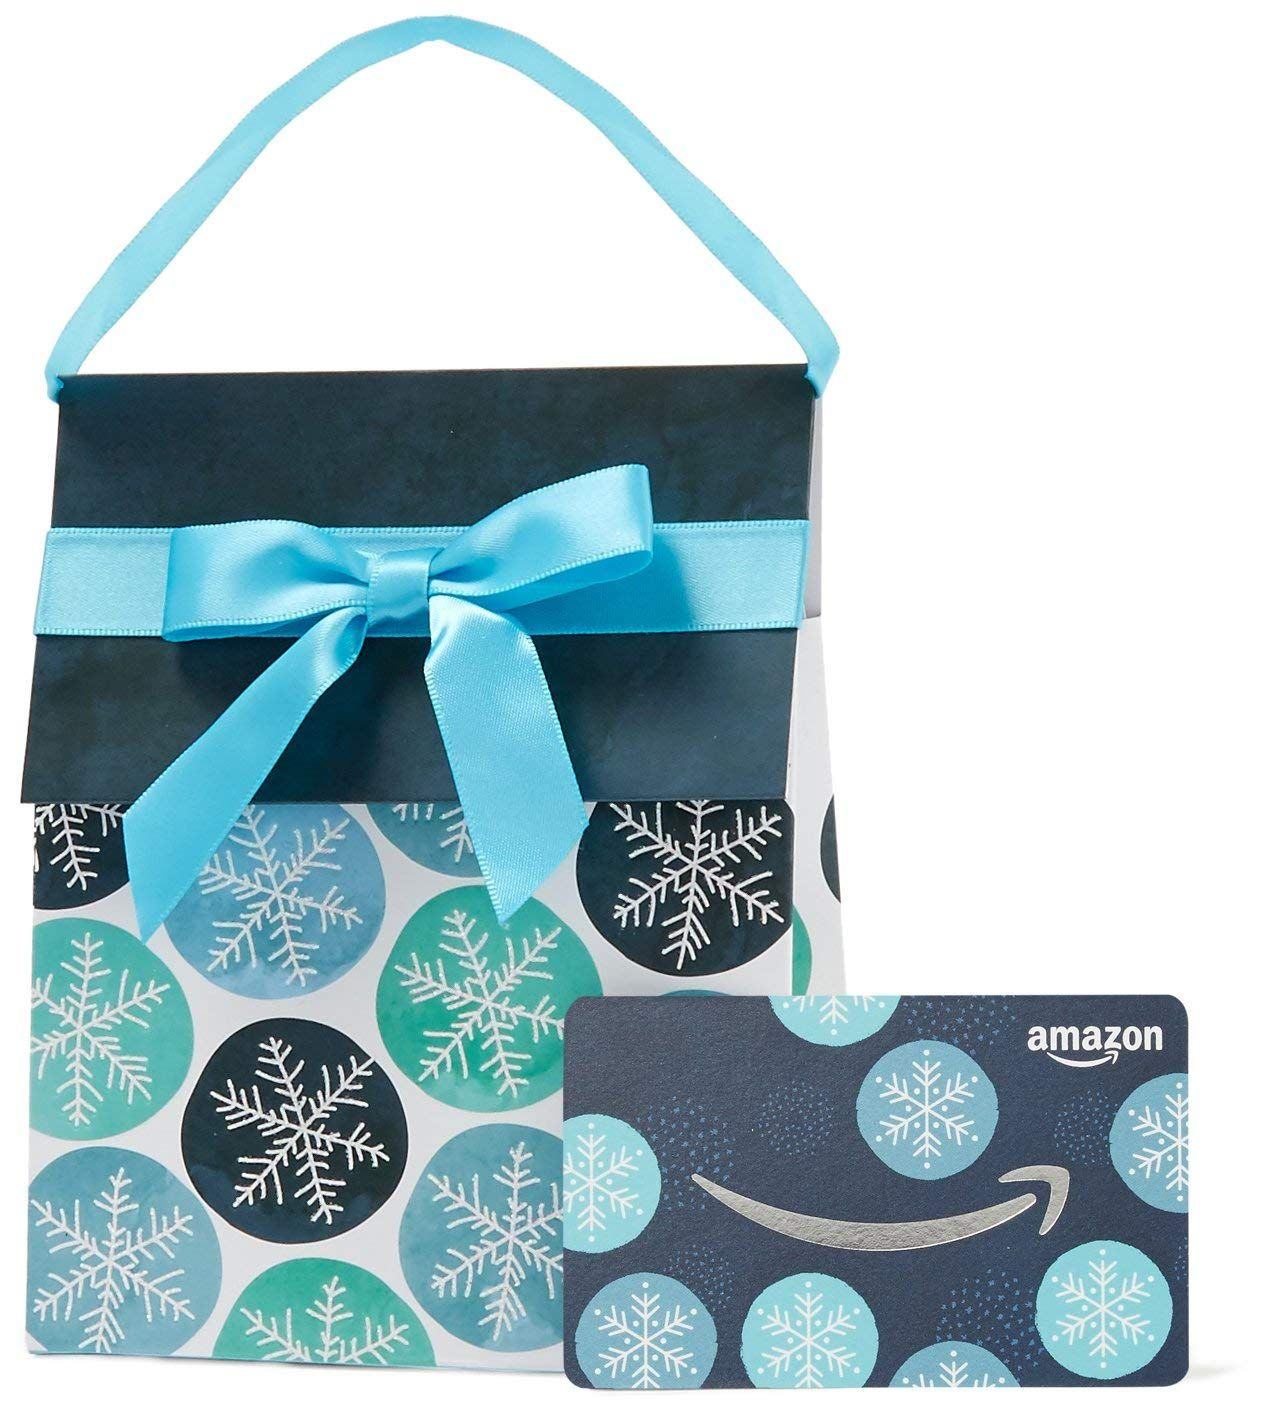 Gift Card is affixed inside a gift bag Gift amount may not